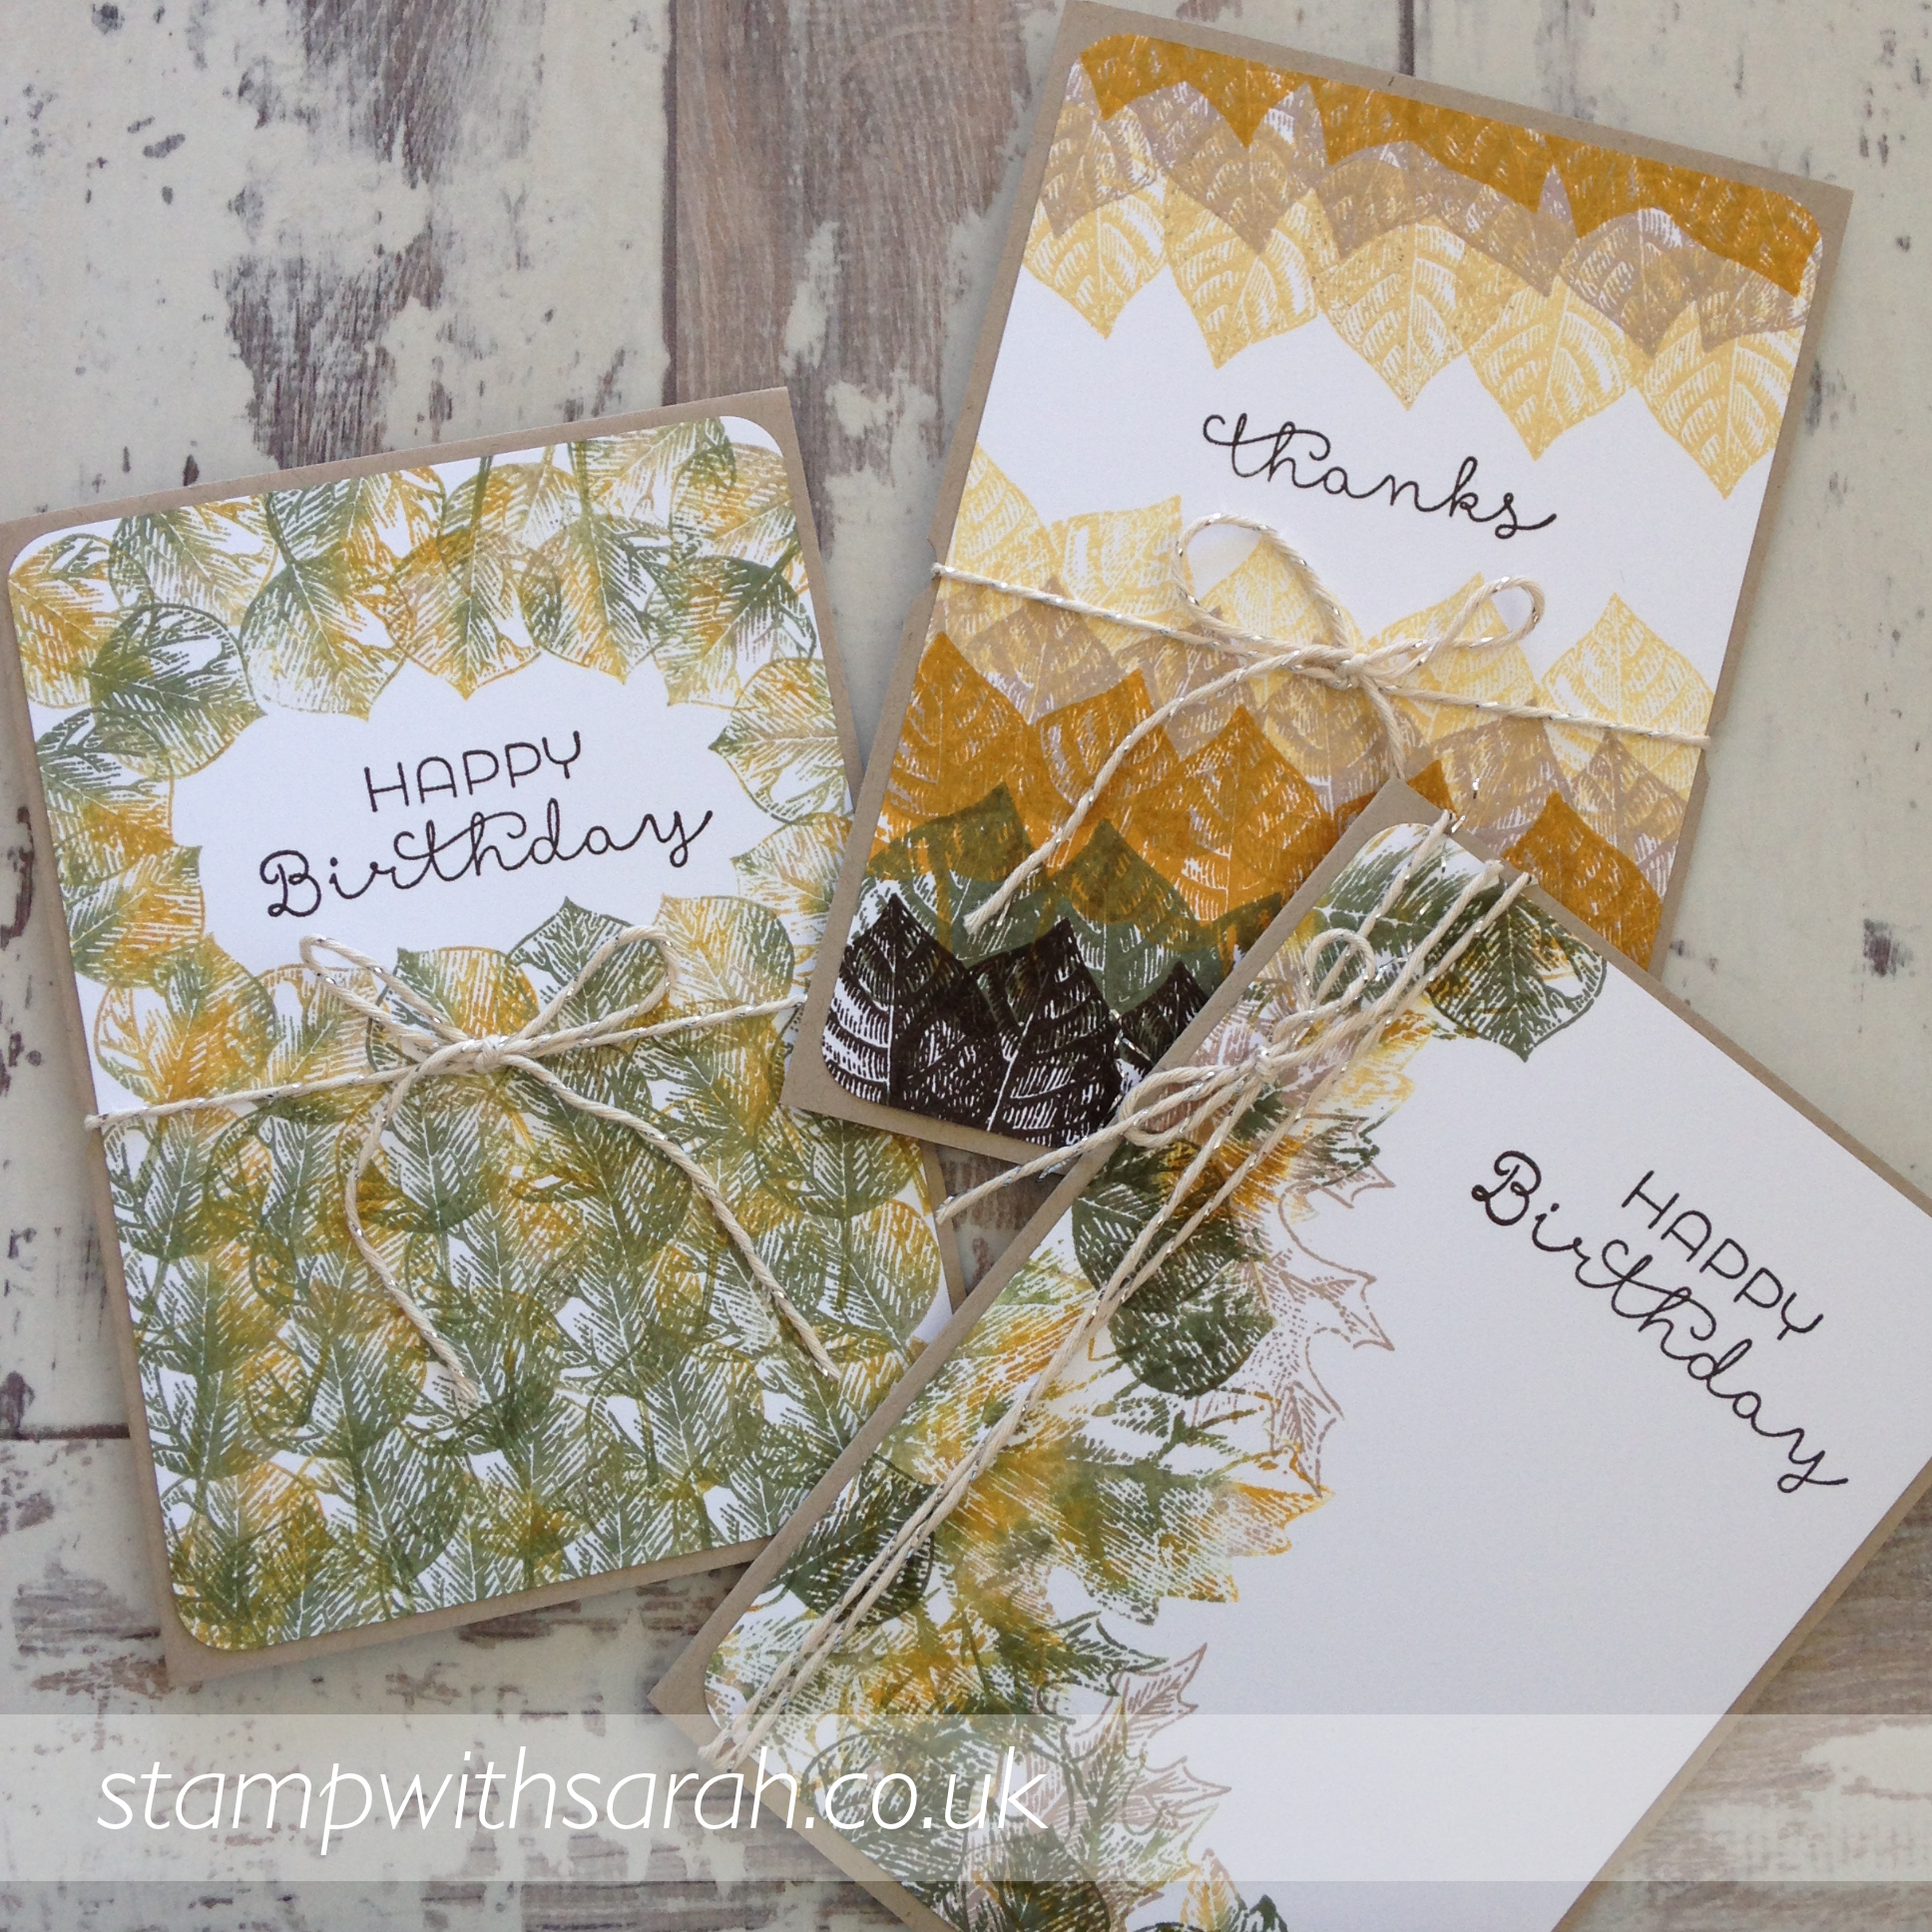 Cards made using Vintage Leaves stamp set by Stampin' Up!